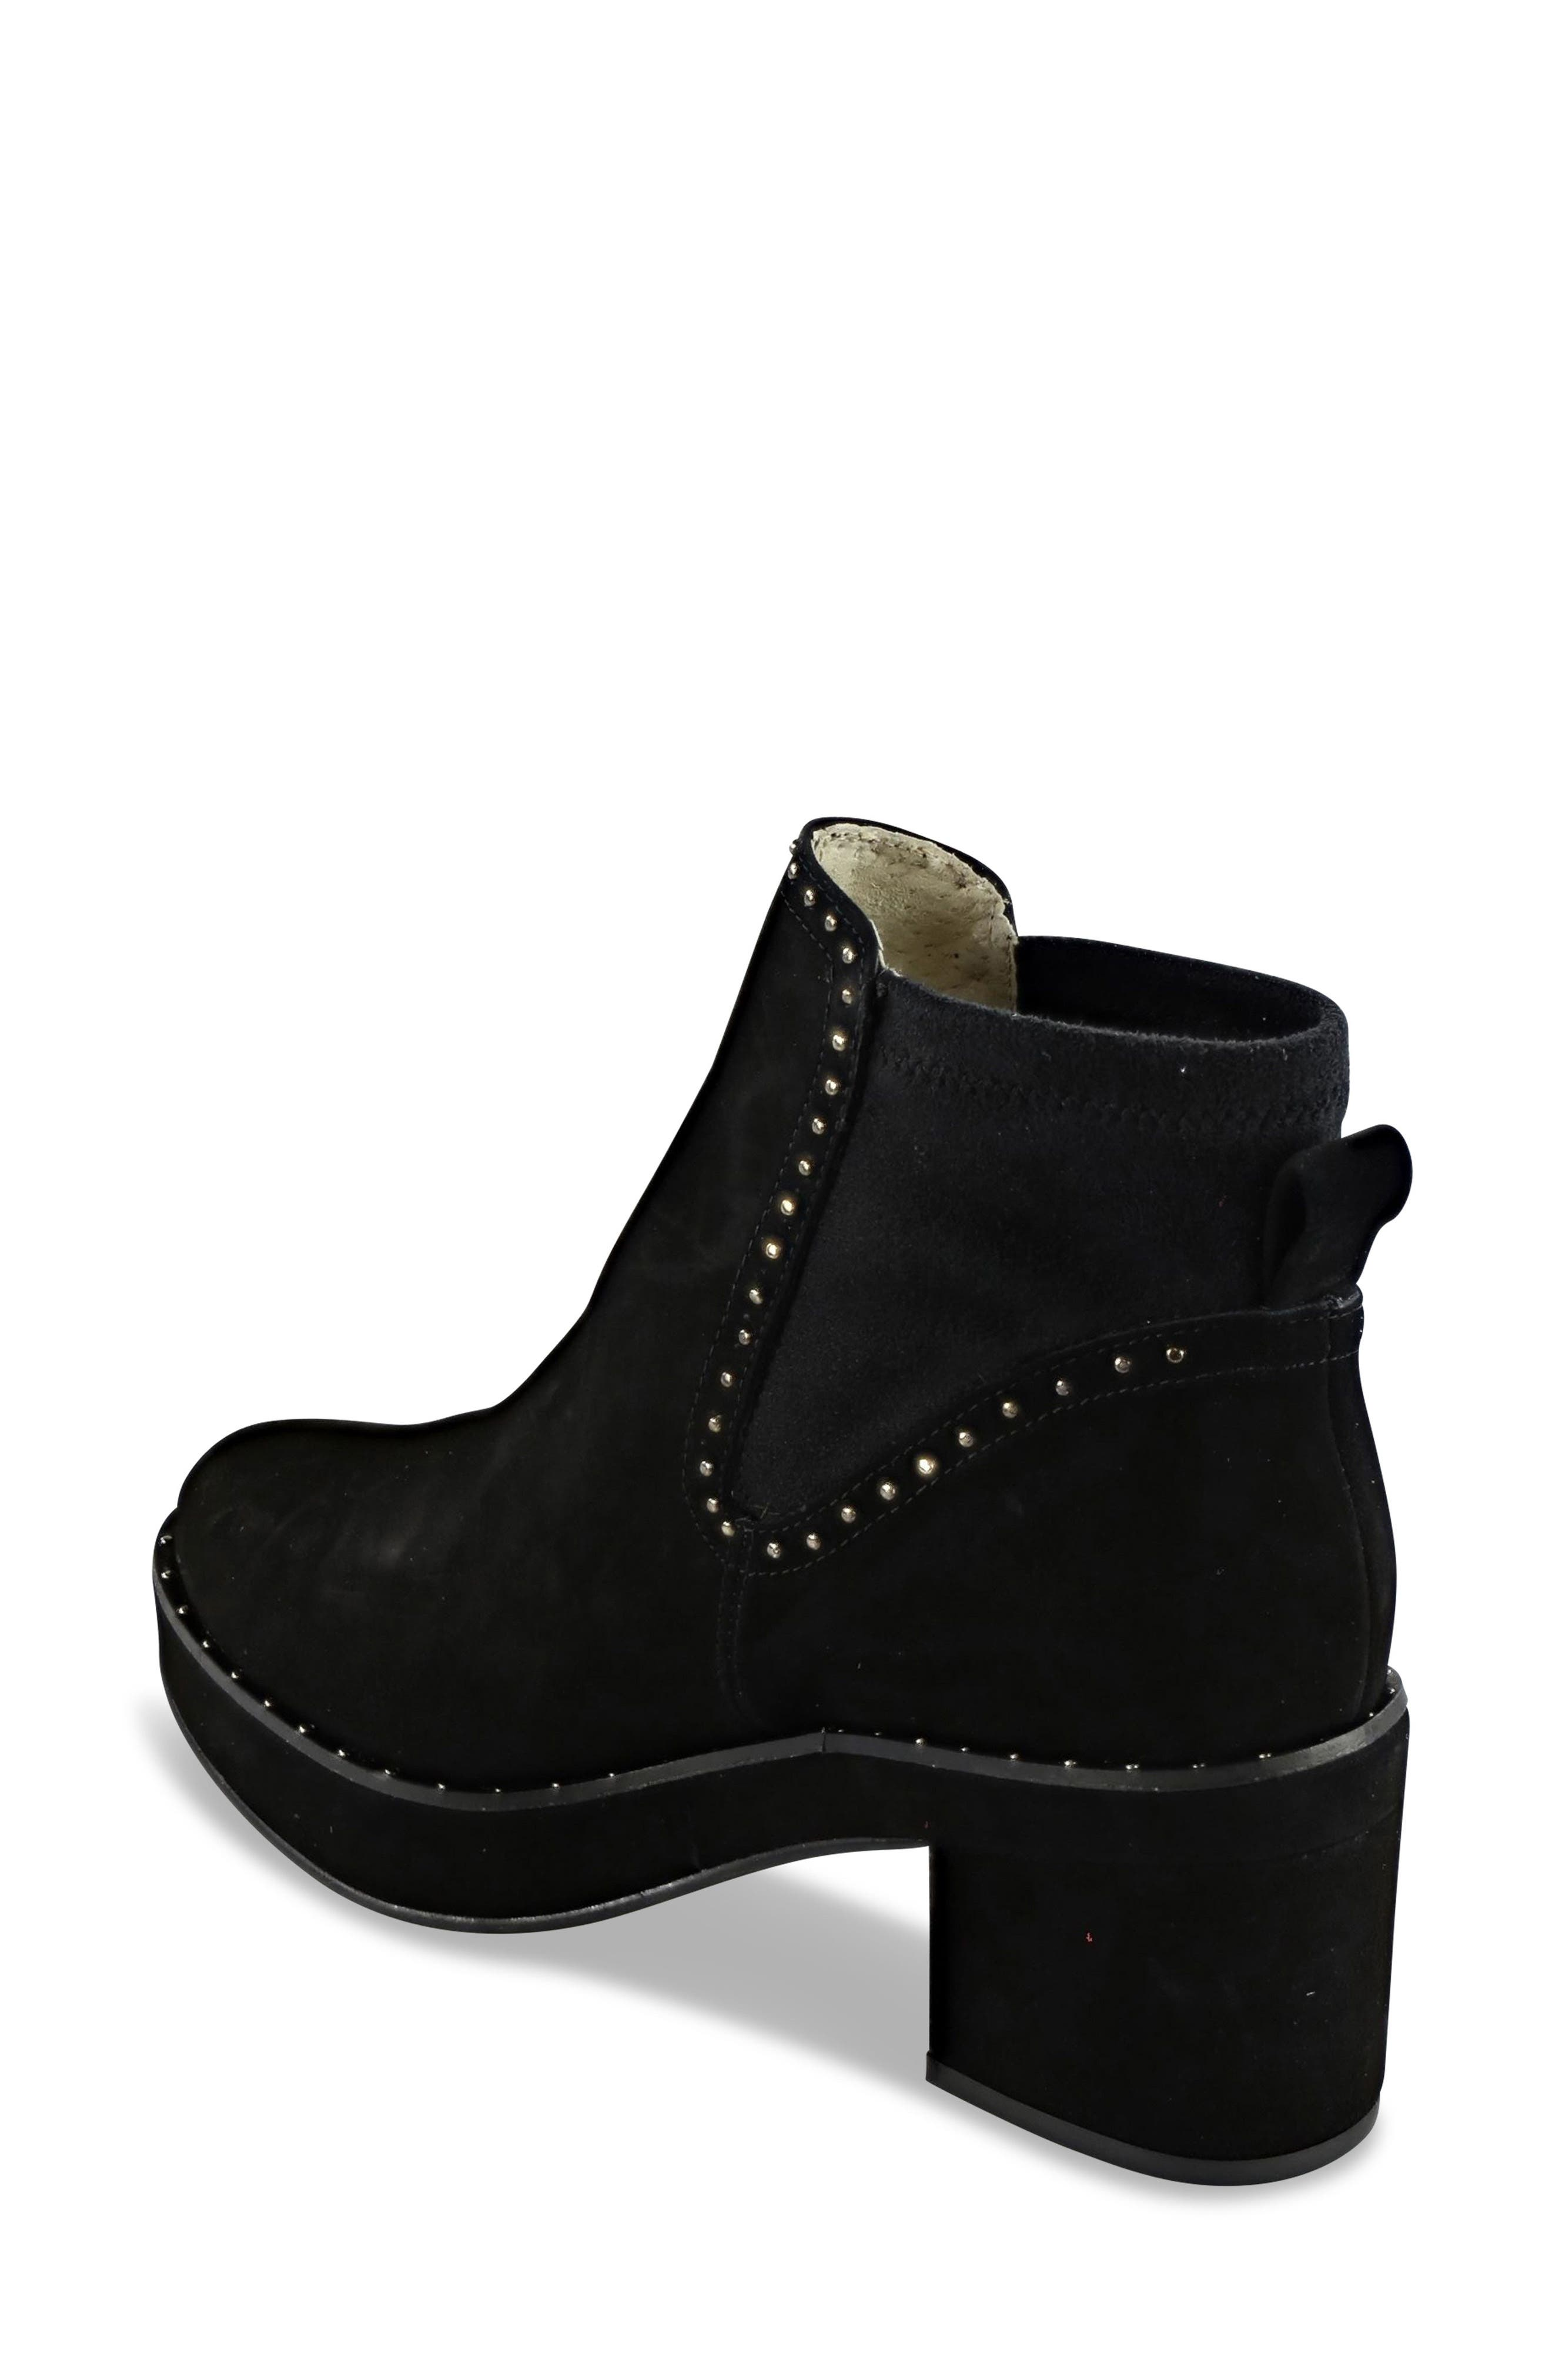 Darri Platform Bootie,                             Alternate thumbnail 2, color,                             002